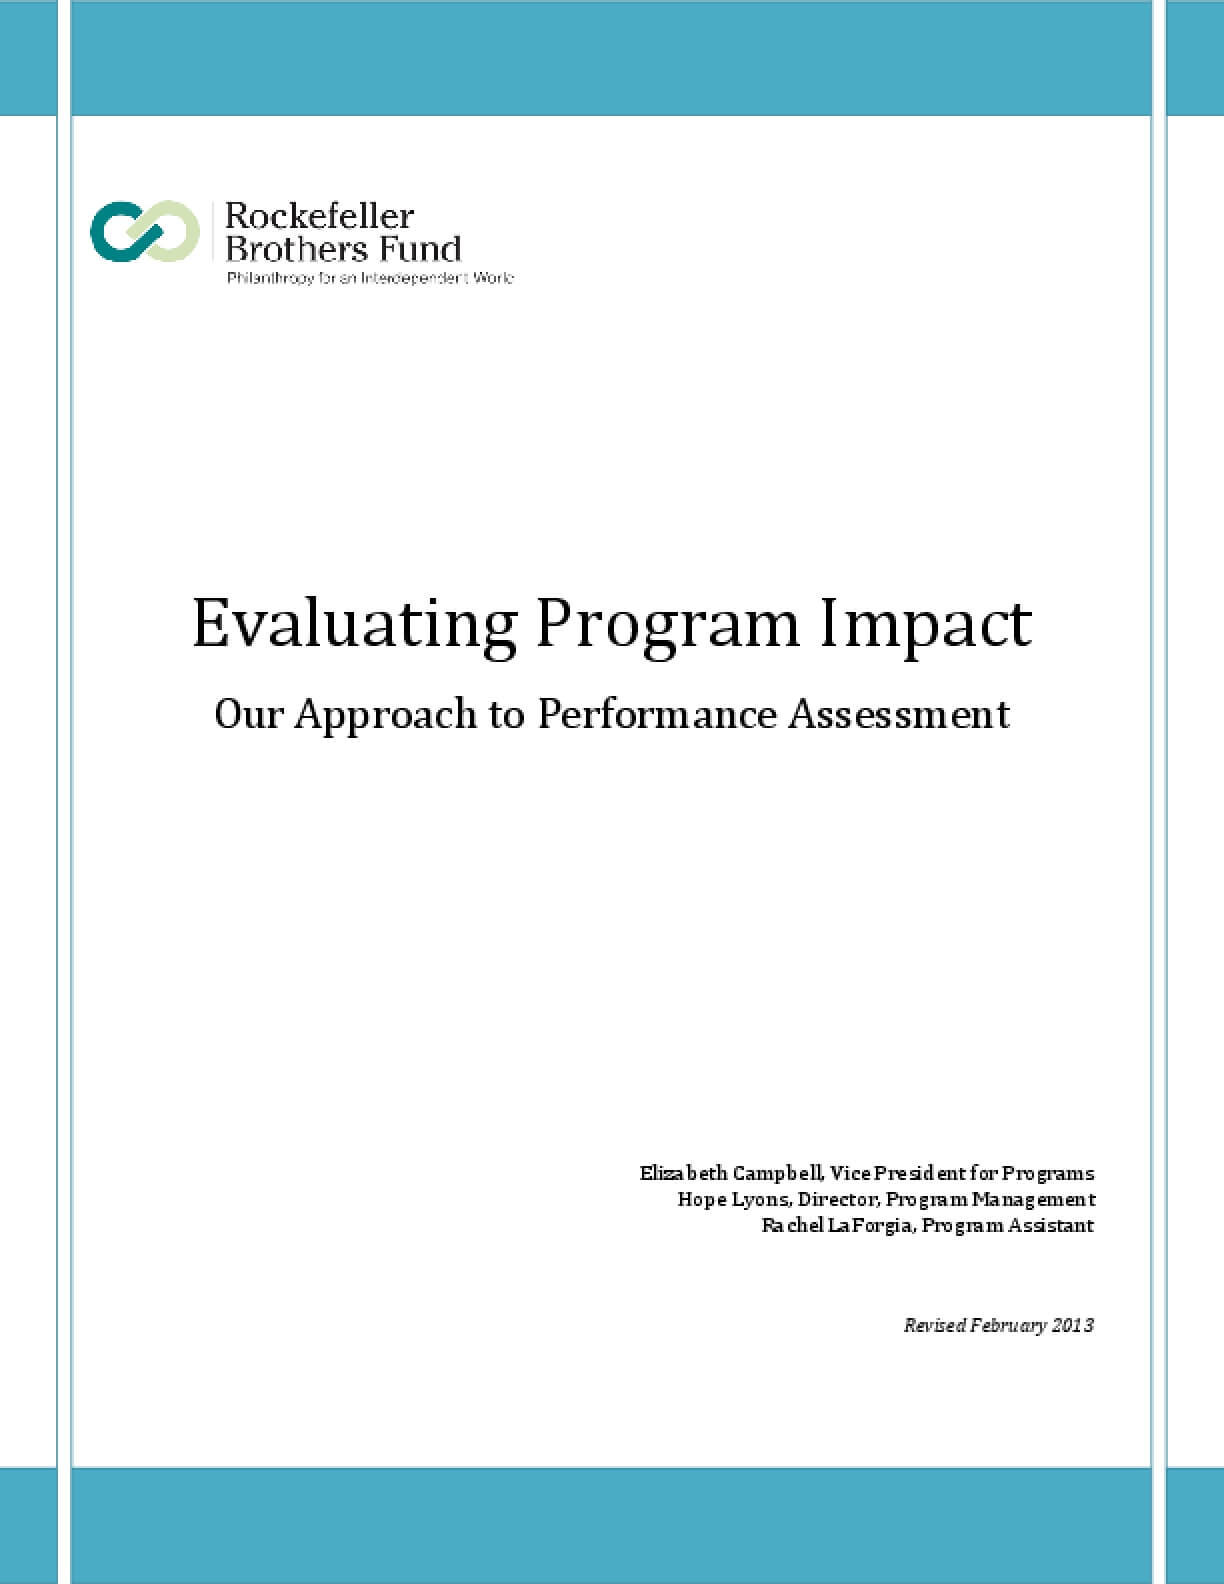 Evaluating Program Impact: Our Approach to Performance Assessment